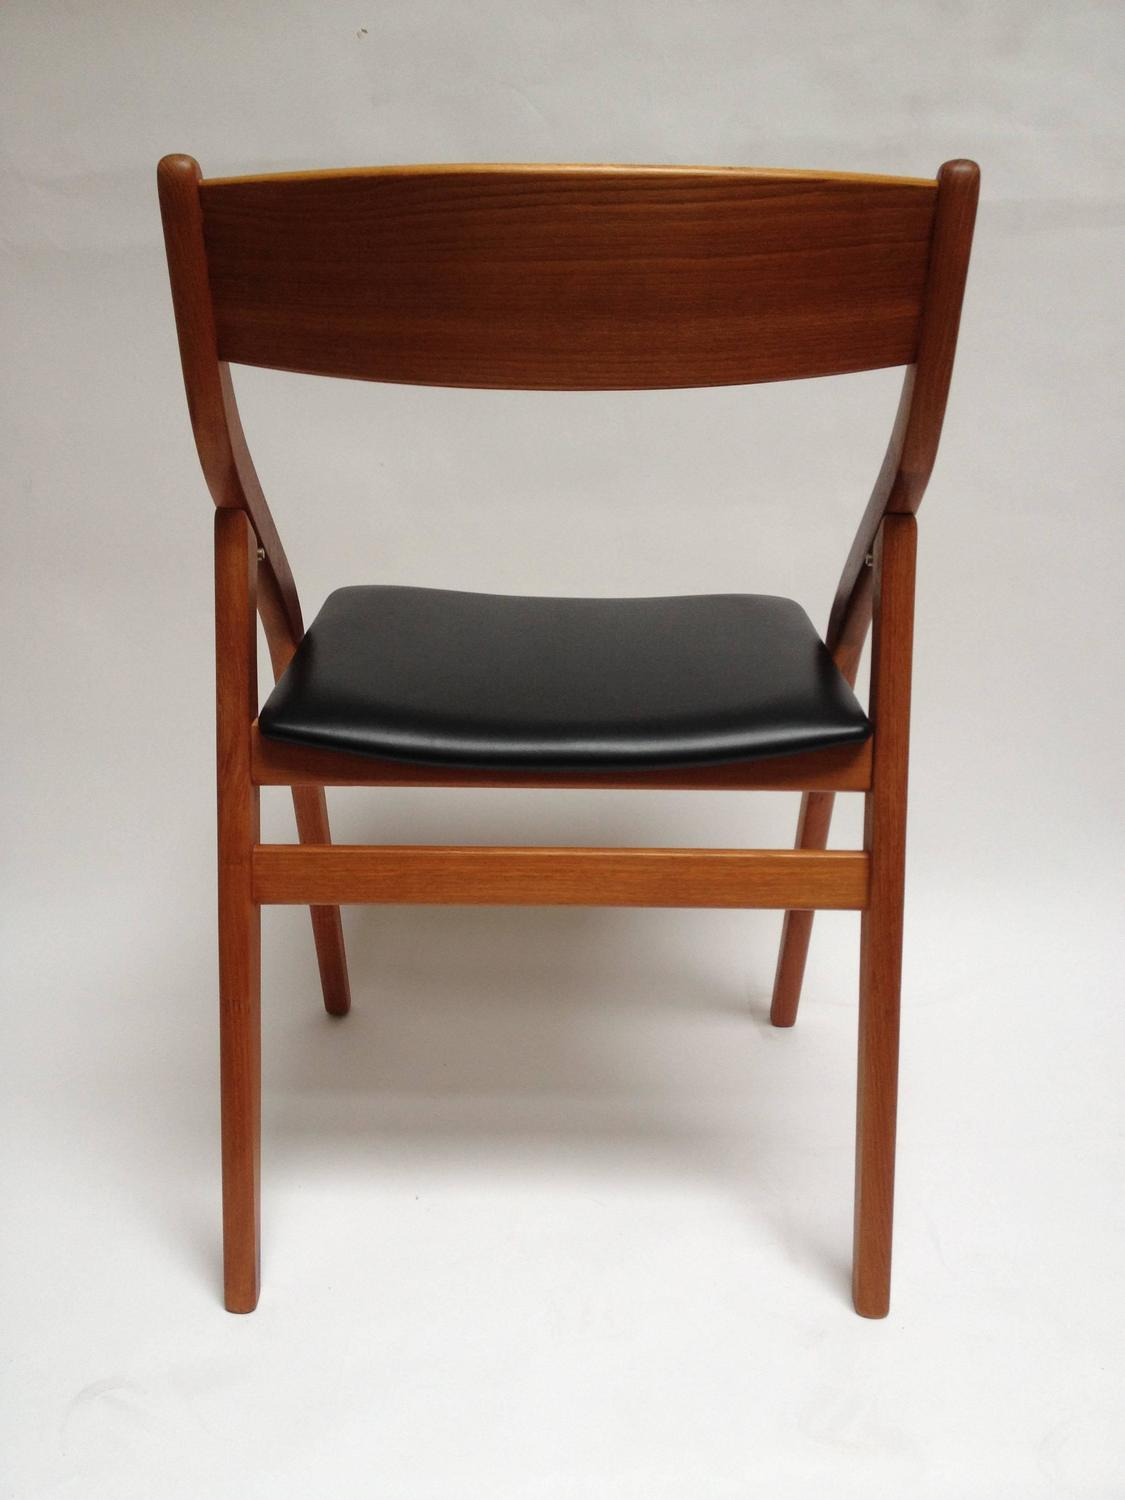 Spectacular Pair Of 1960s Danish Folding Chairs By Dyrlund At 1stdibs